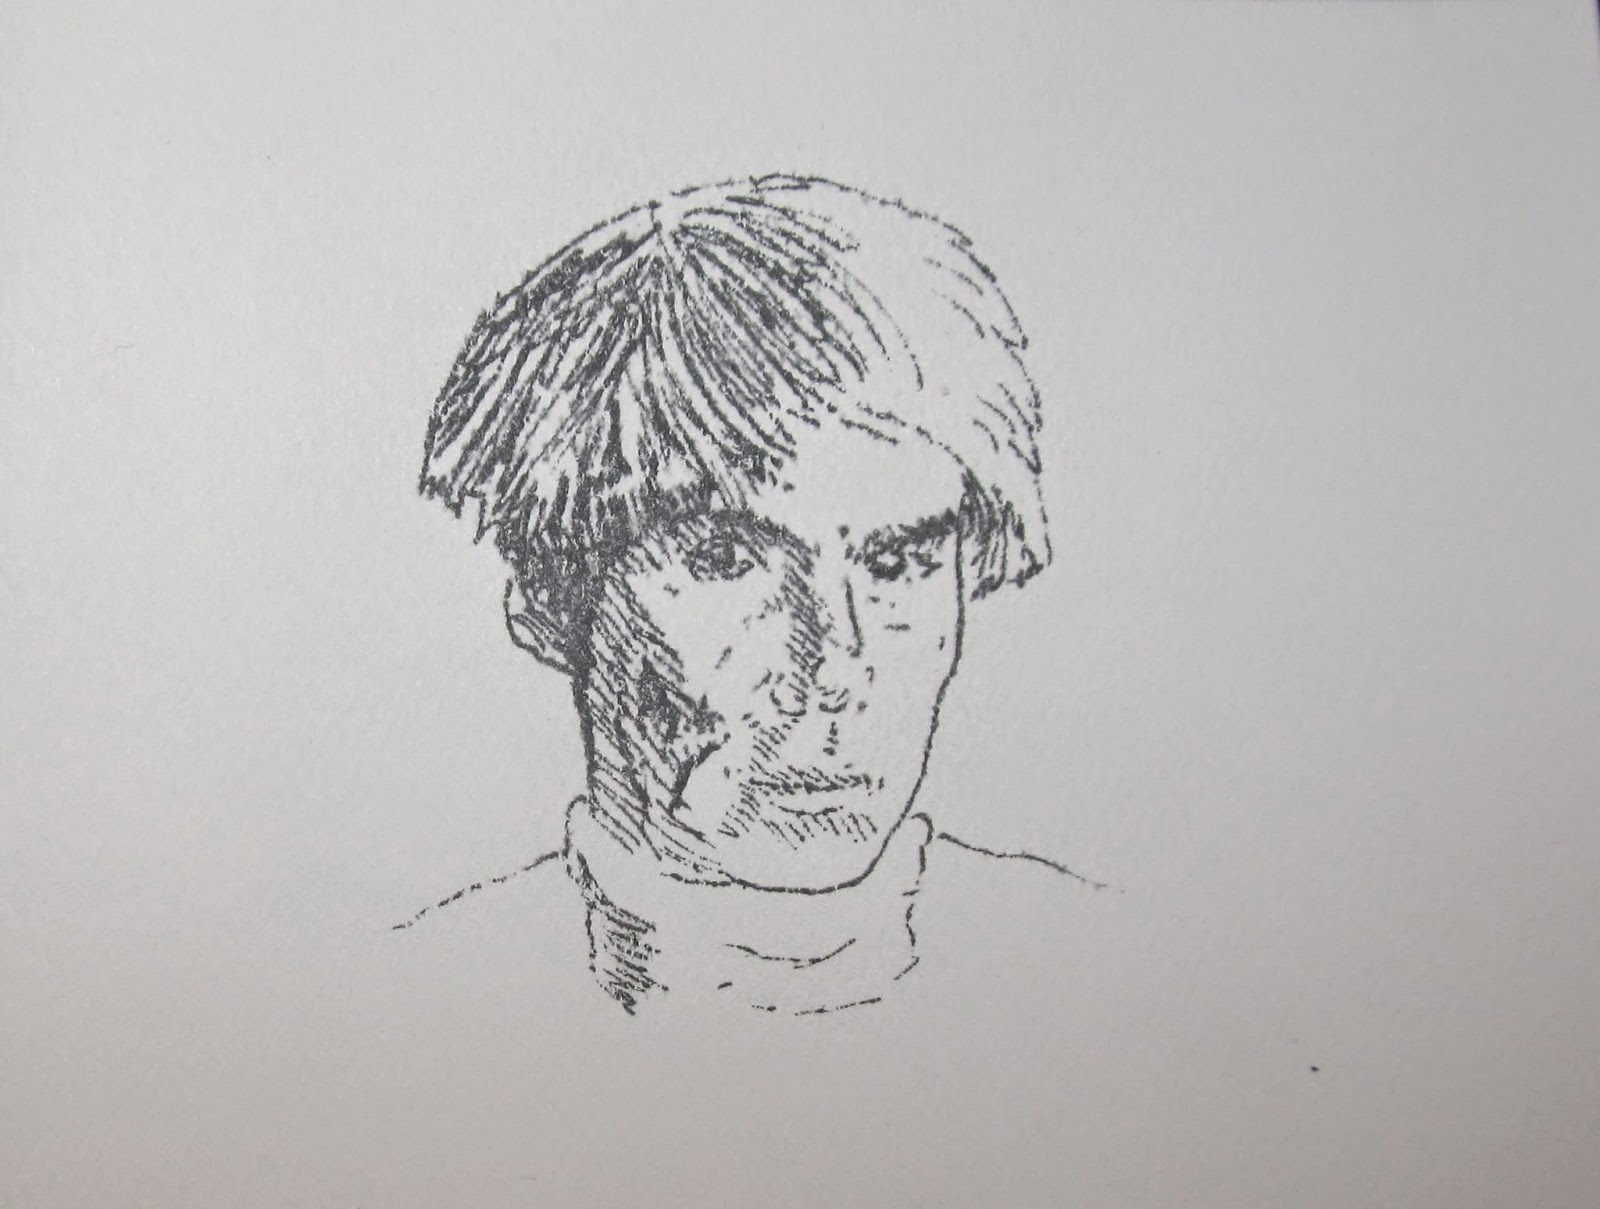 Andy Warhol - Lithograph by F. Lennox Campello. Edition of 5. 4x5 inches, circa 1980